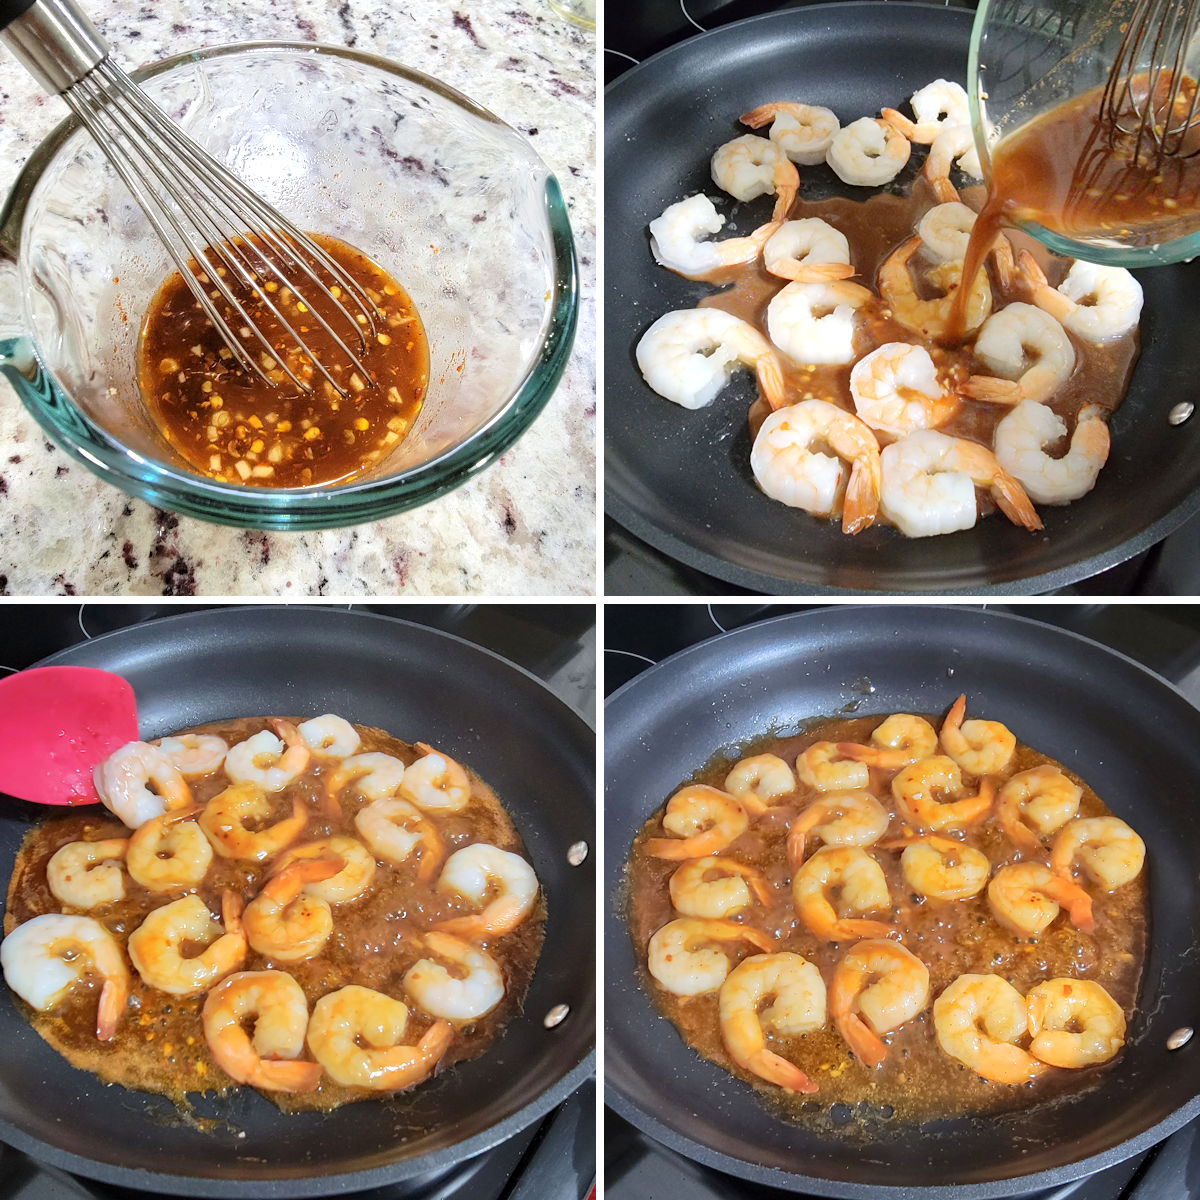 Cooking shrimp in a skillet on the stove top.